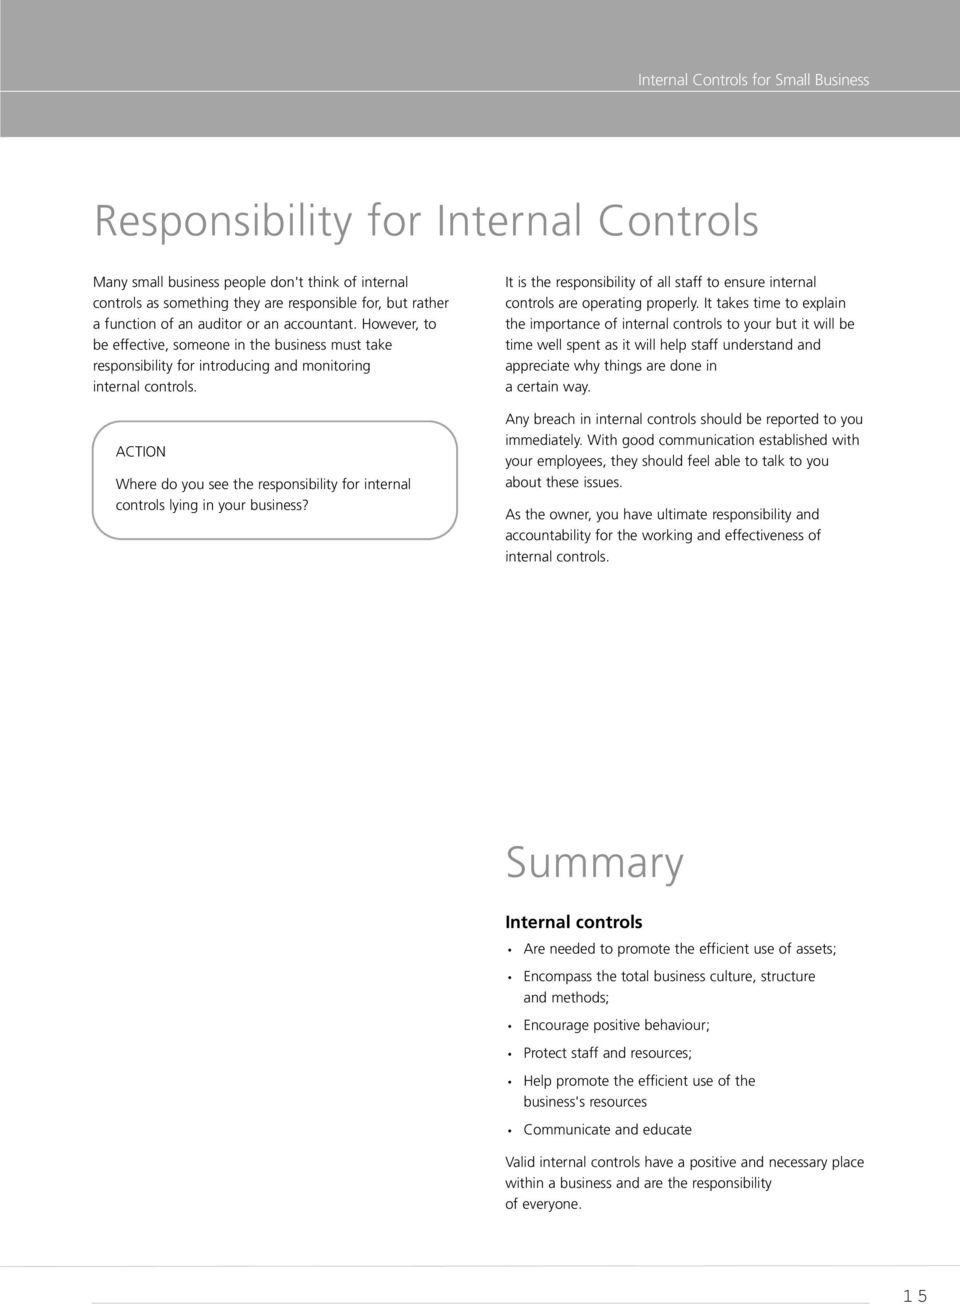 Where do you see the responsibility for internal controls lying in your business? It is the responsibility of all staff to ensure internal controls are operating properly.